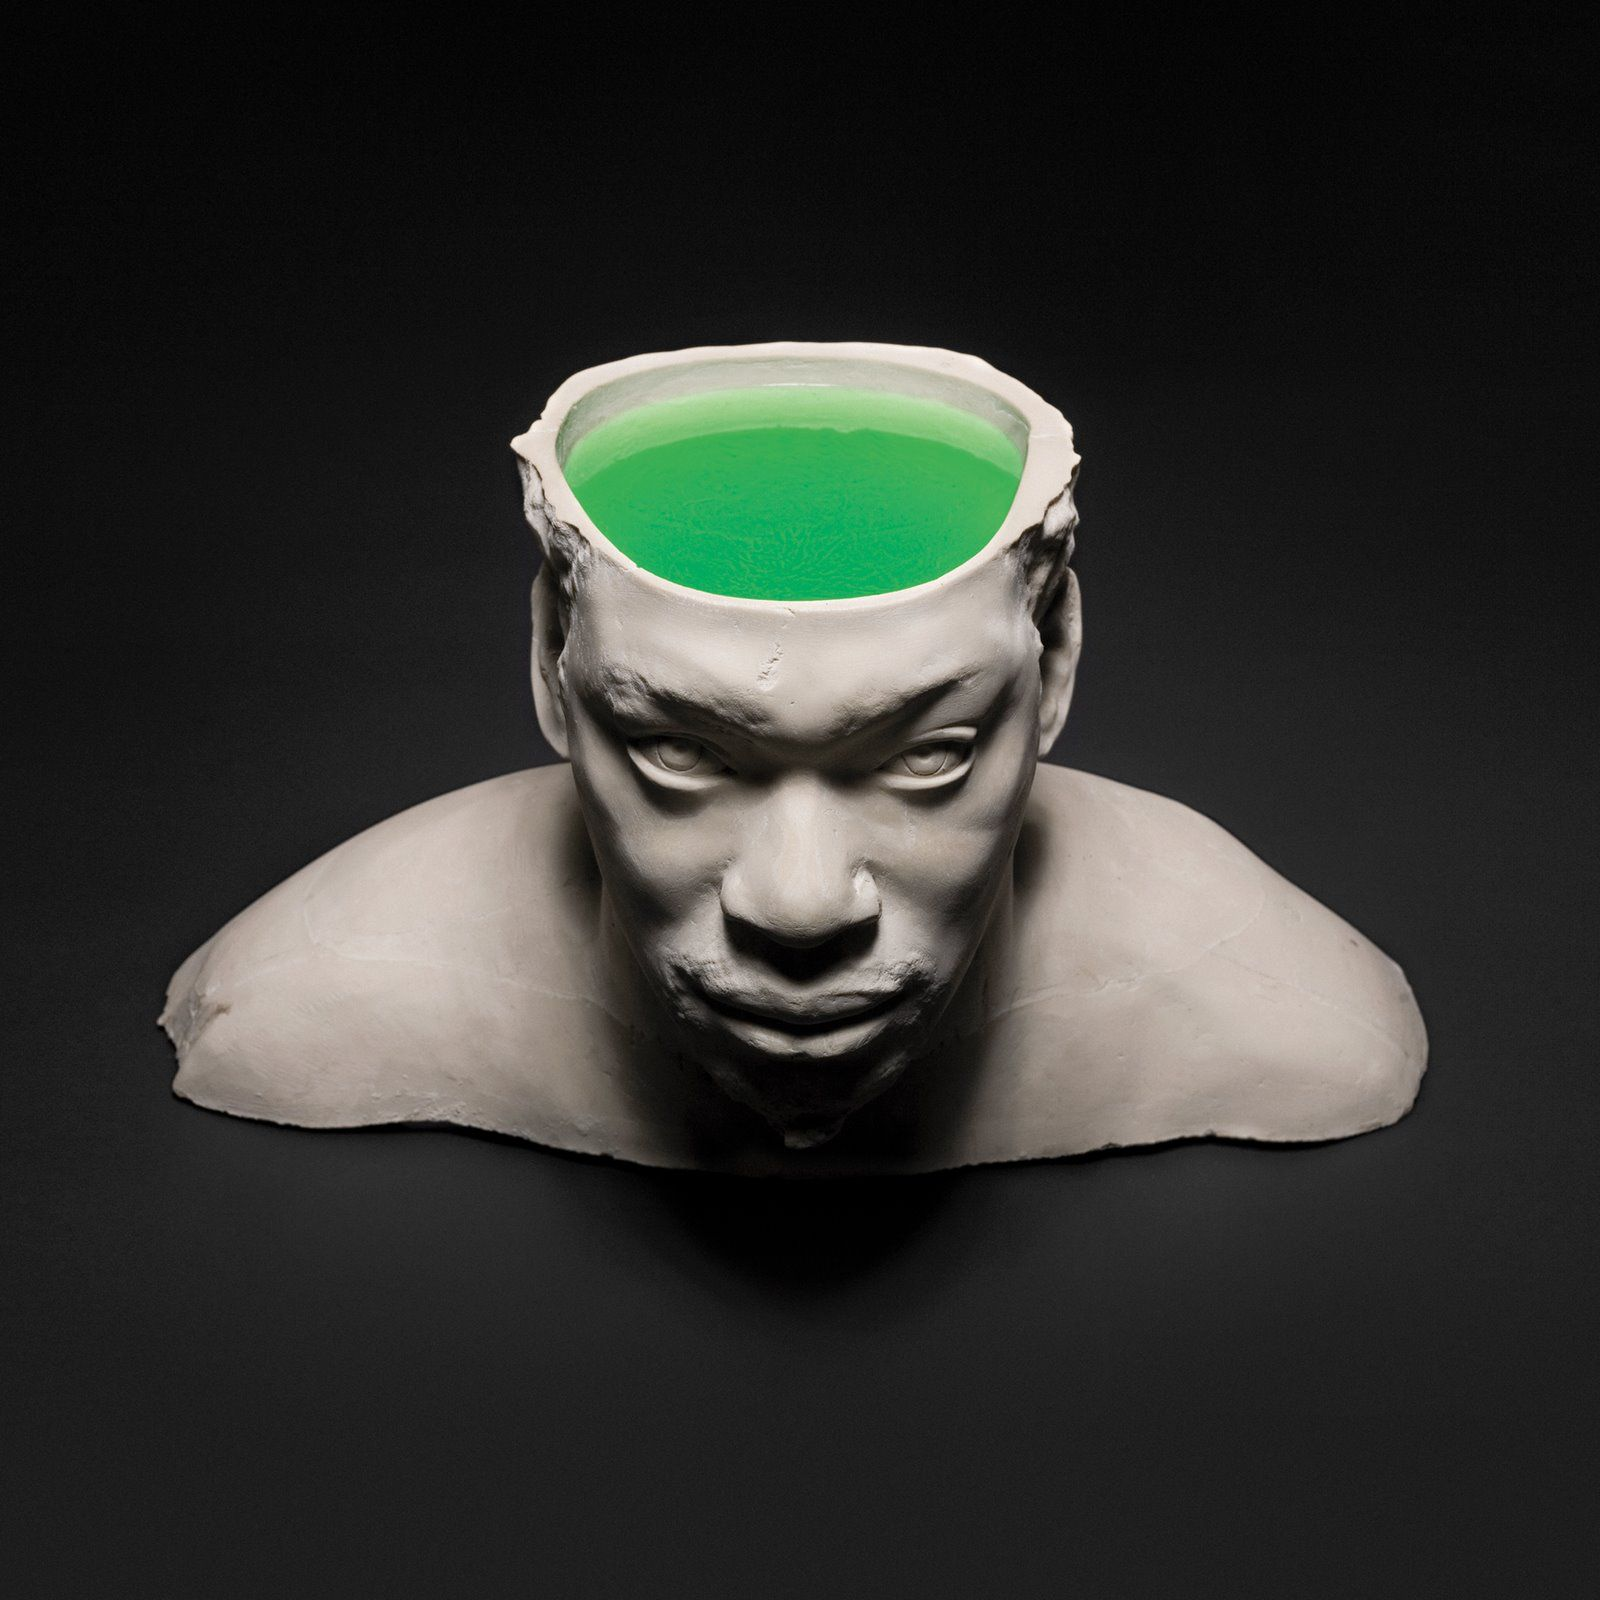 Roots Manuva's_Slime and Reason.